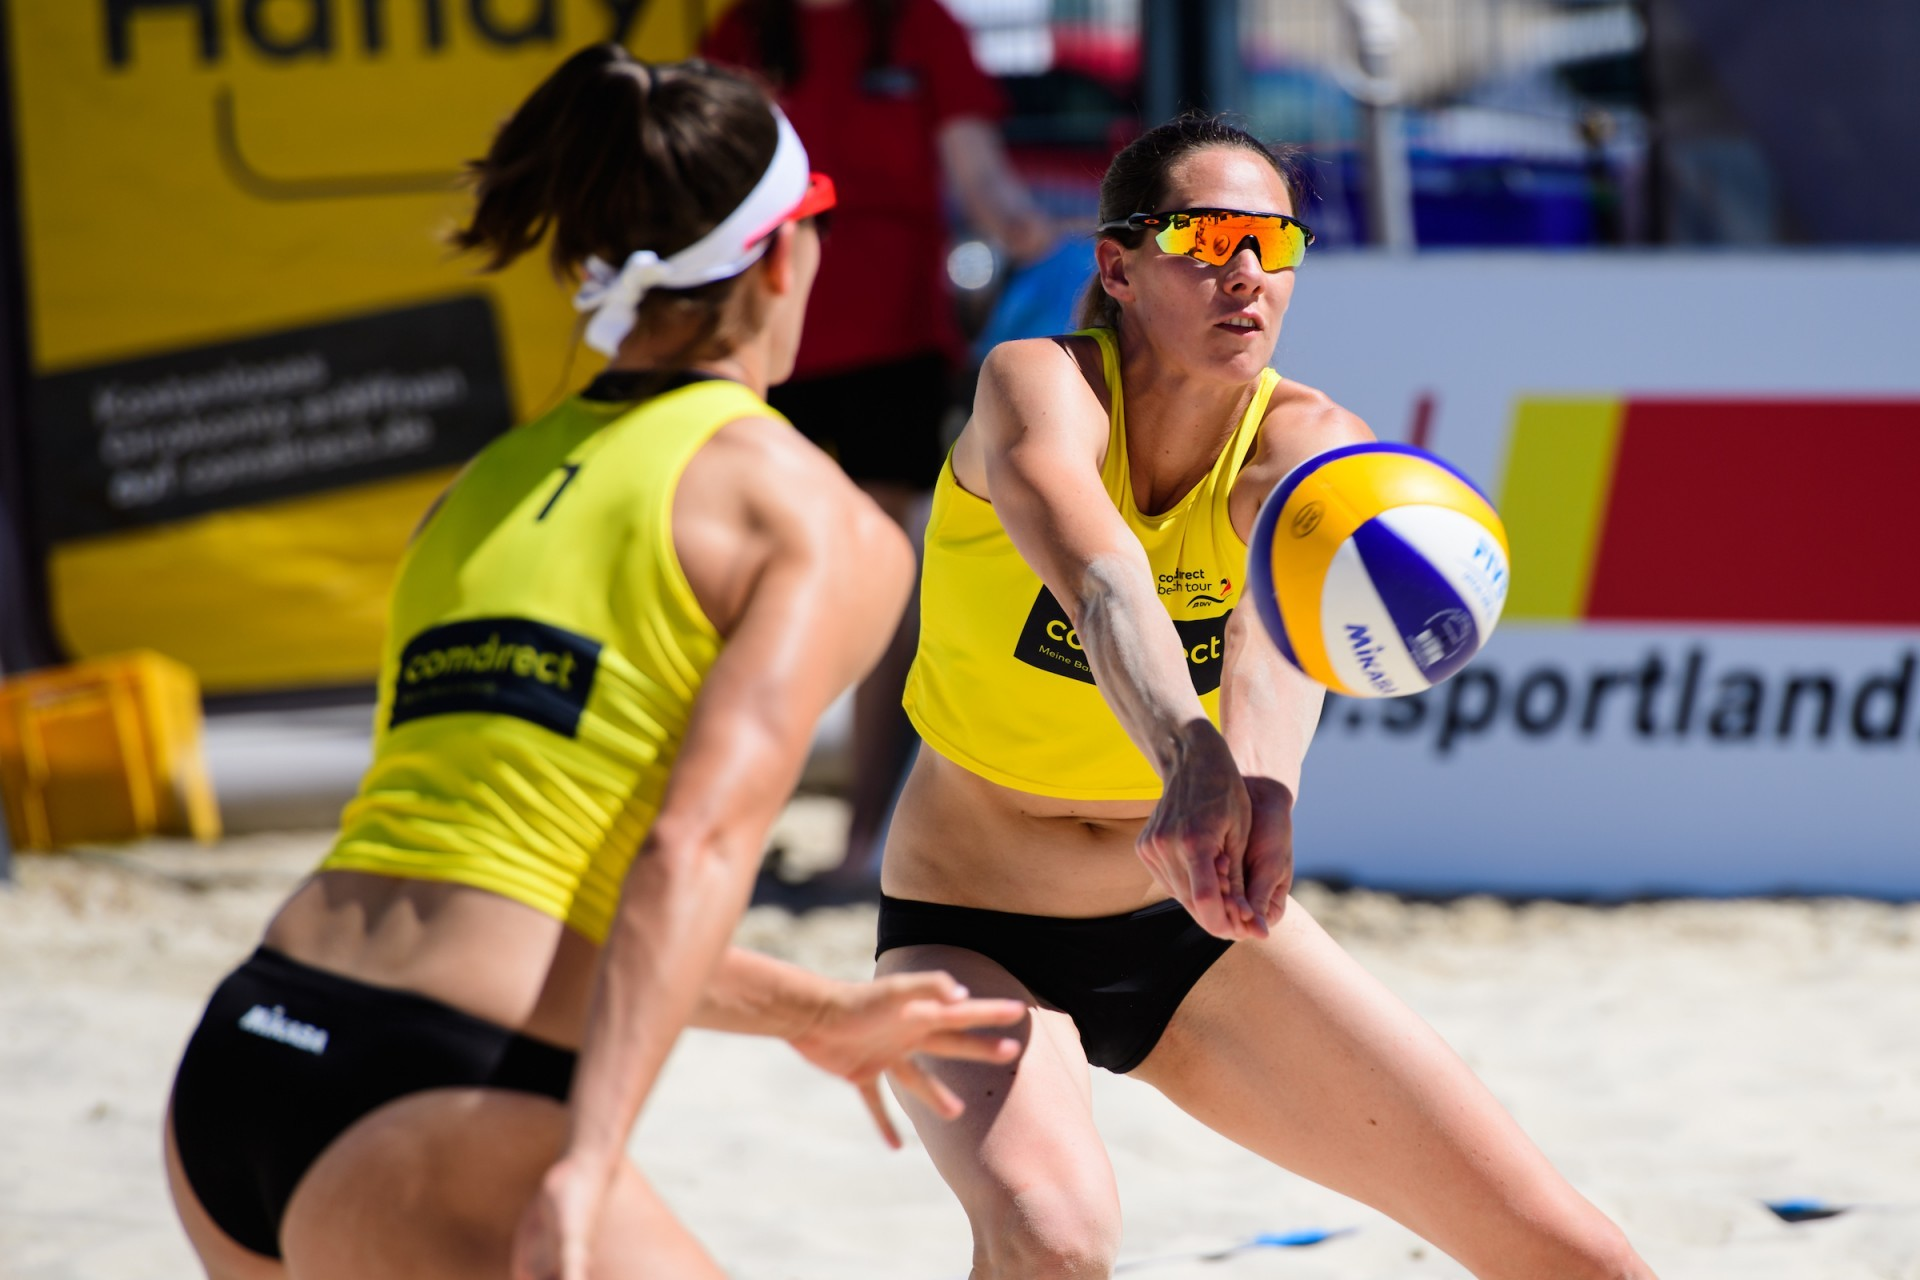 Kira in action during her beach volleyball return this weekend in Düsseldorf